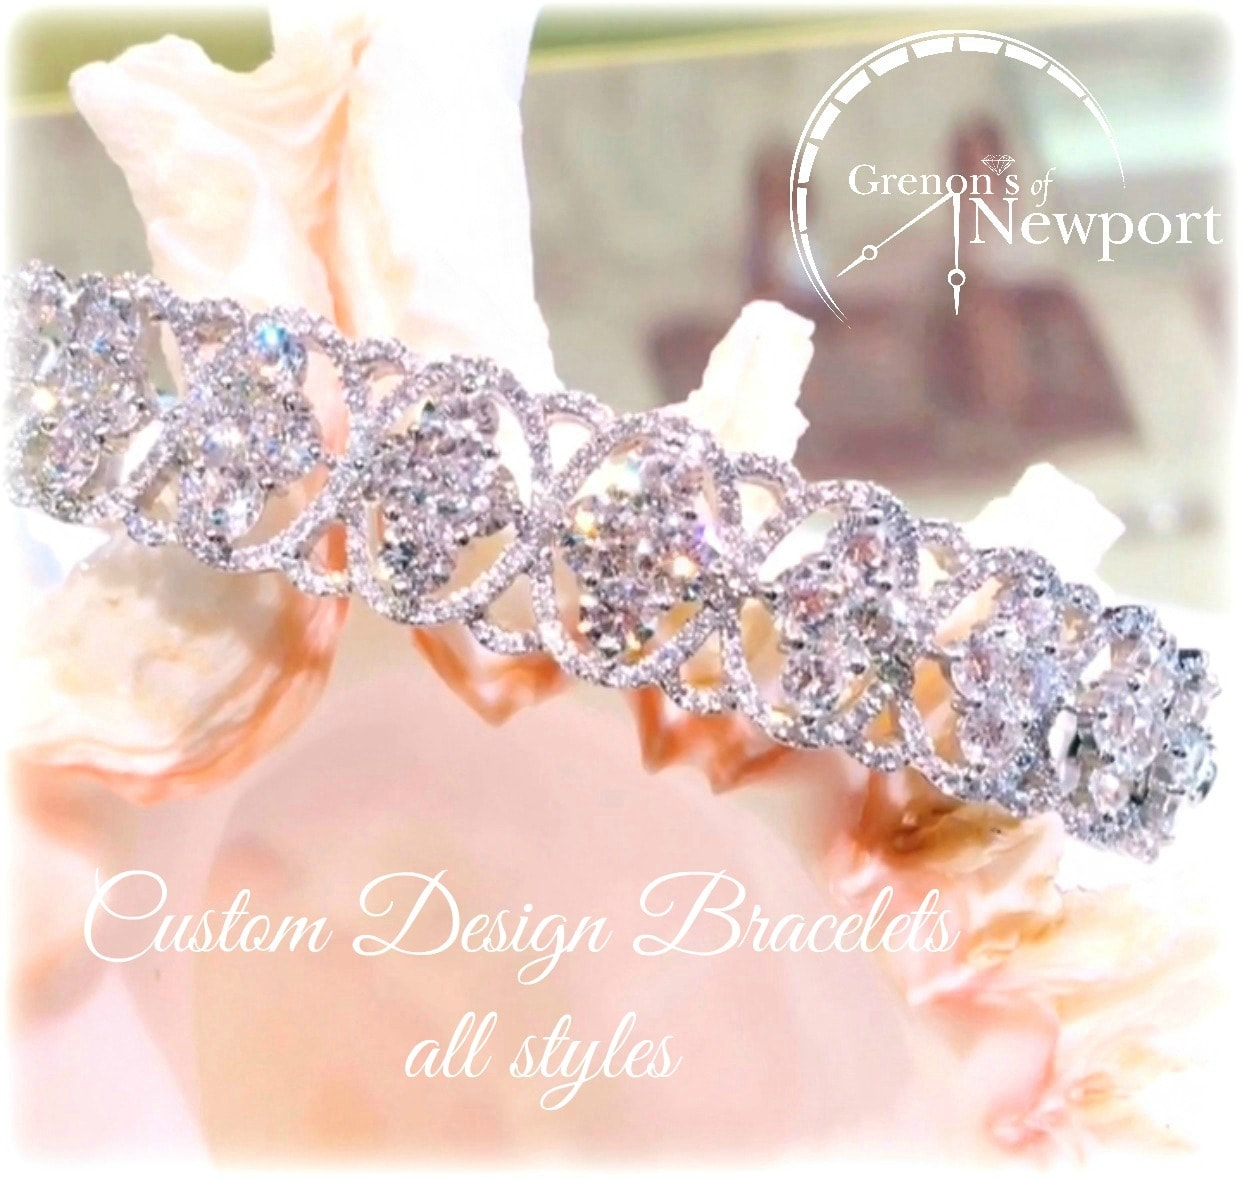 Grenon's_Of_Newport_Custom_design_diamond_bracelet_all_styles-min